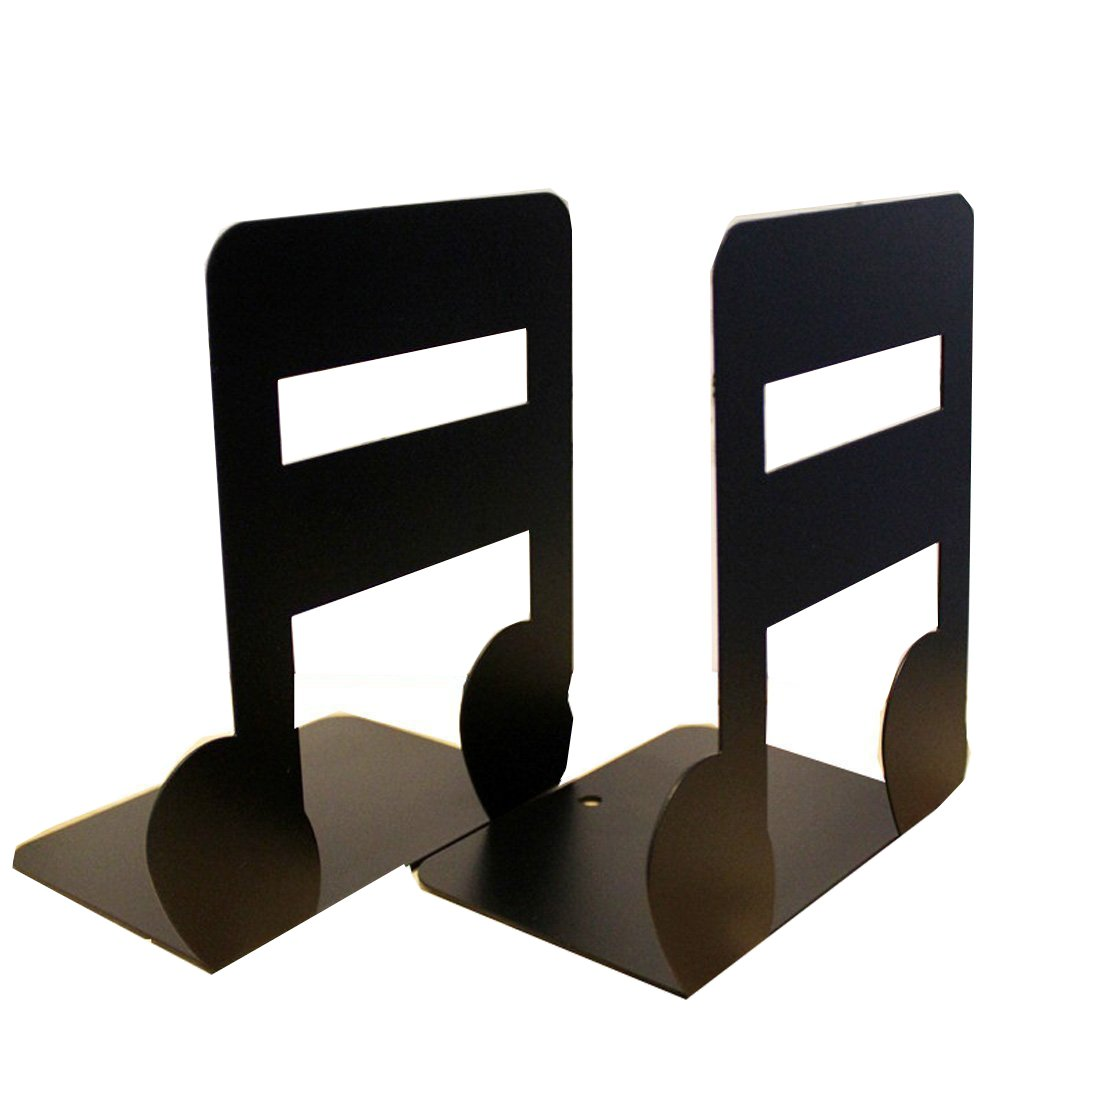 1 Pair of Fashion Music High Note Nonskid Library School Office Home Study Kitchen Metal Art Bookends Book End Decoration Birthday Christmas Gift Ideal (High Note Black) FaithYoo